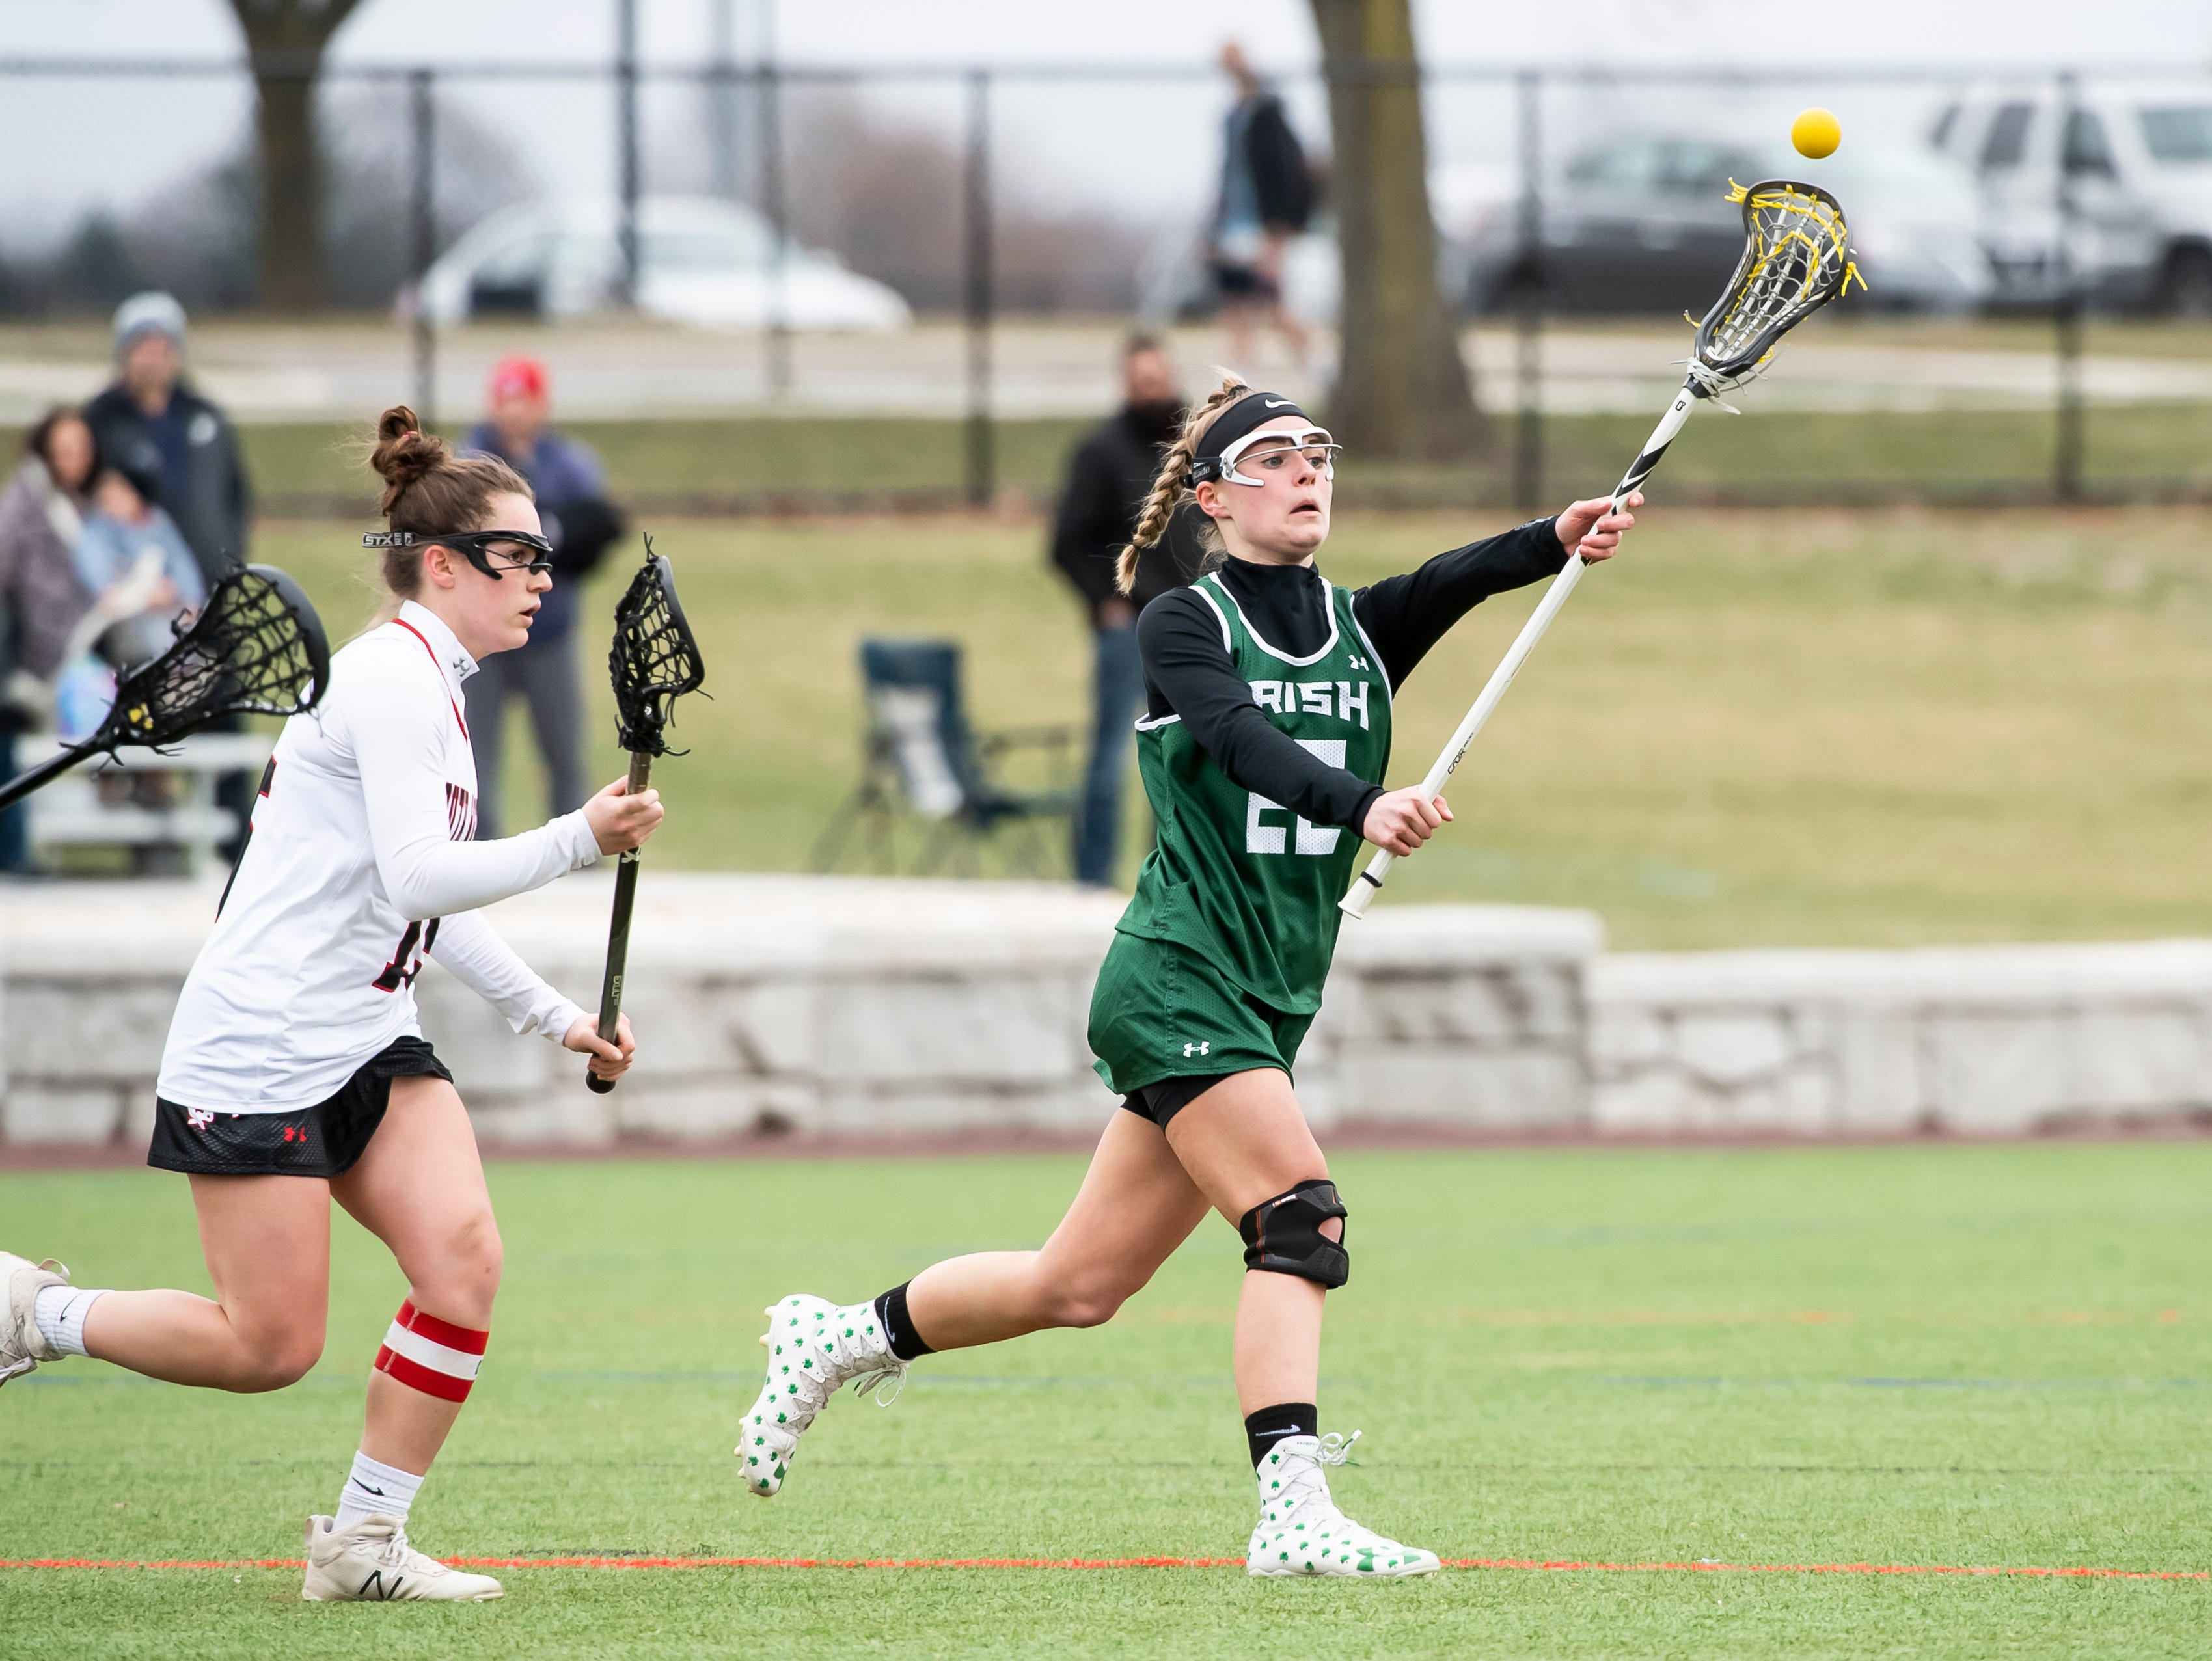 York Catholic's Natalie Neiman passes the ball during a YAIAA lacrosse game against South Western in Hanover on Tuesday, April 2, 2019. York Catholic won 19-7 and improved to 5-0.